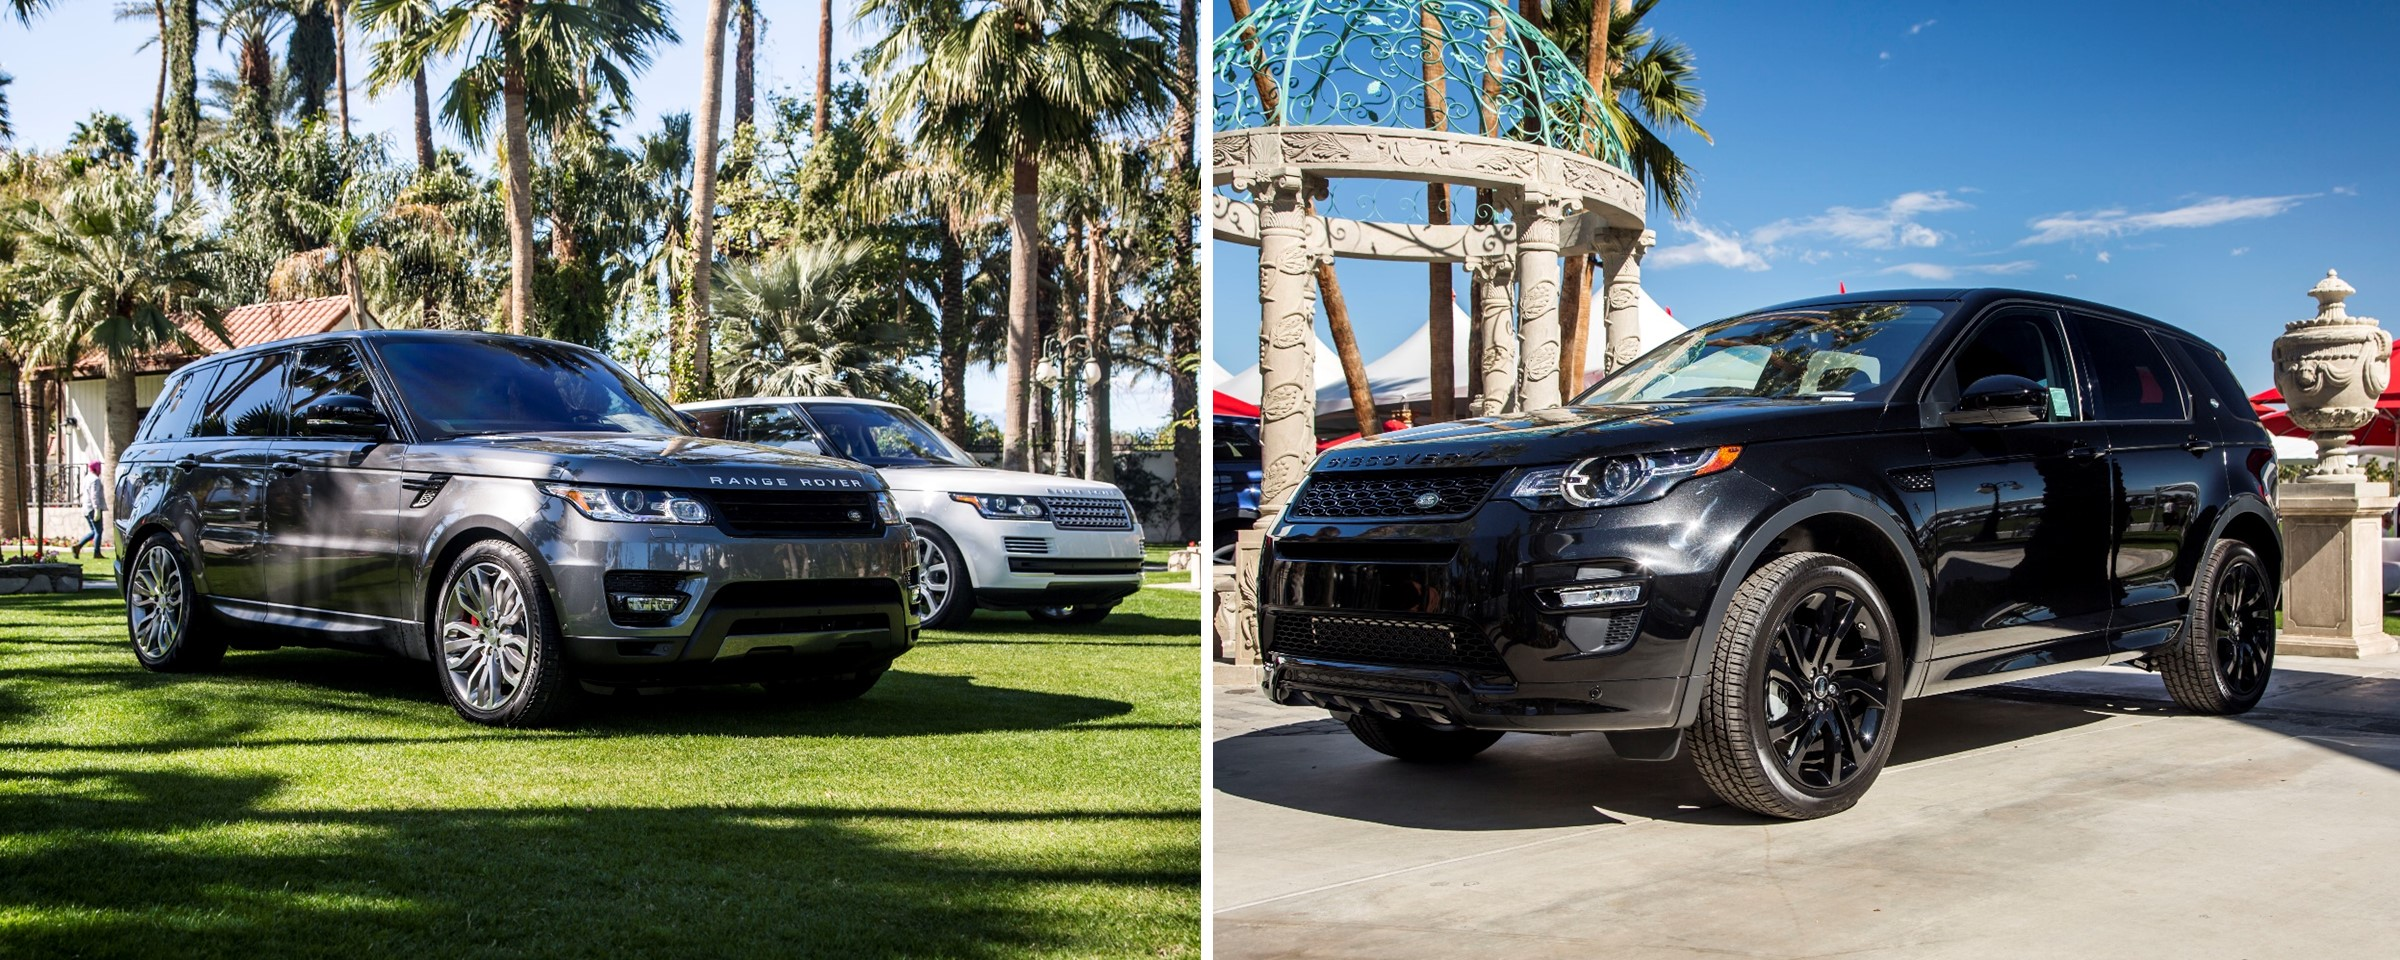 Land Rover Rancho Mirage Showcases New Models At Empire